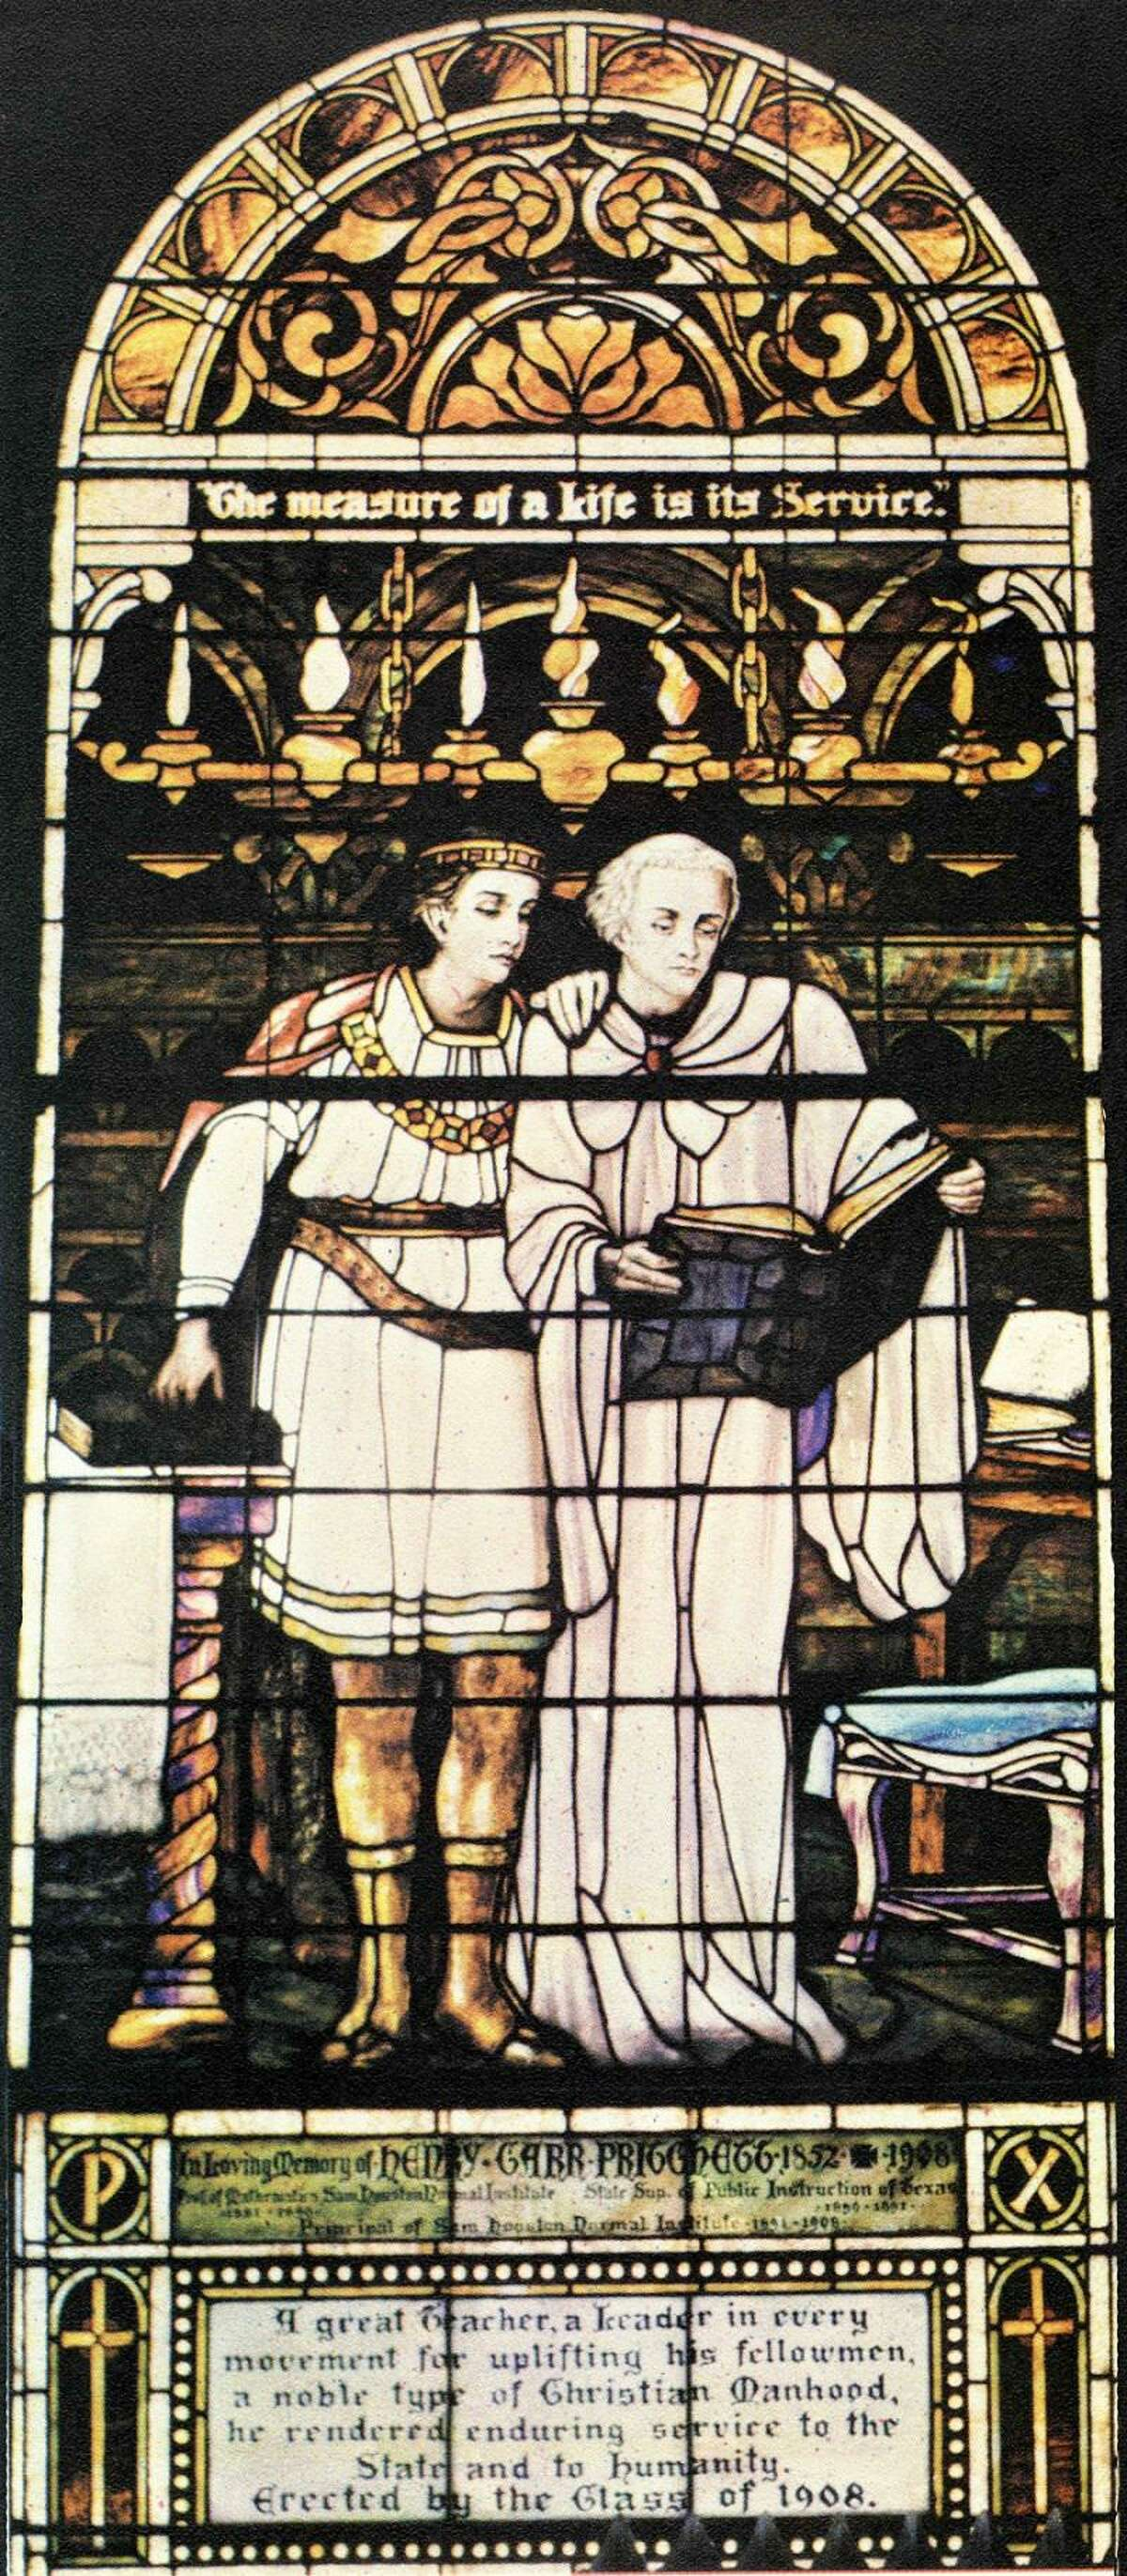 The original stained-glass window in SHSU's Old Main. It was destroyed when Old Main burned in 1982.